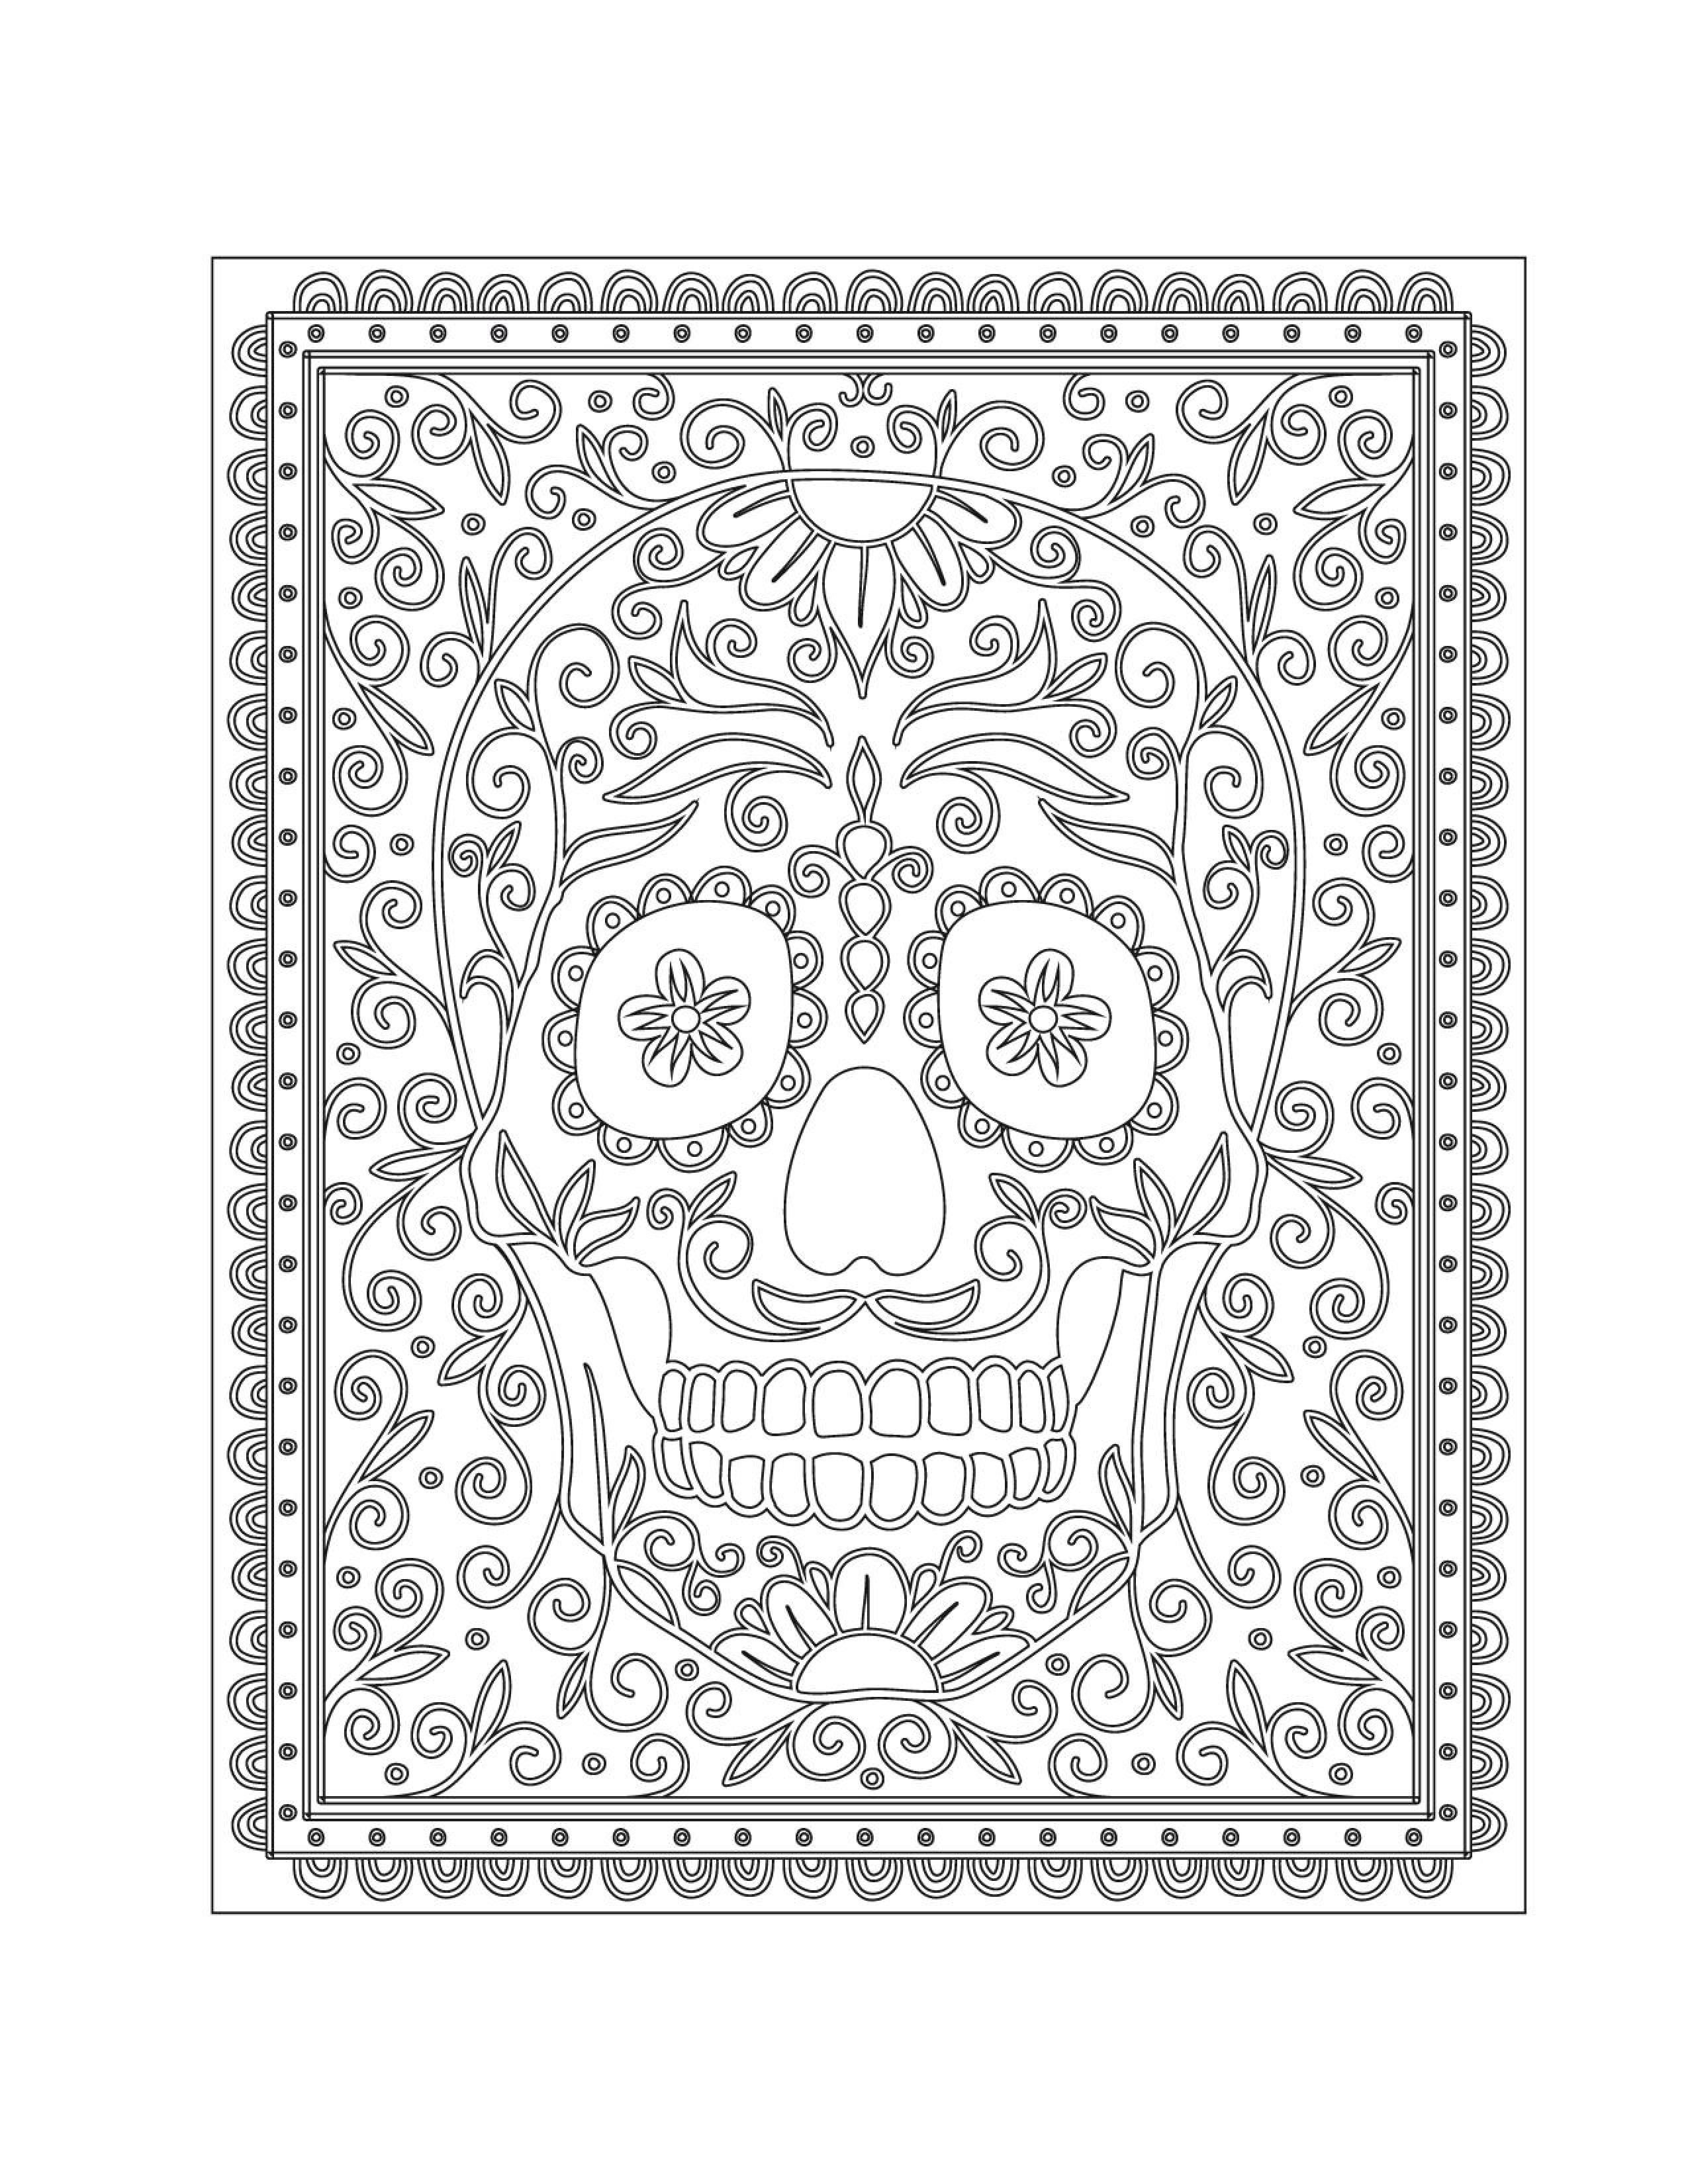 Pin de Małgorzata Kitka en Coloring pages to print - Skulls | Pinterest